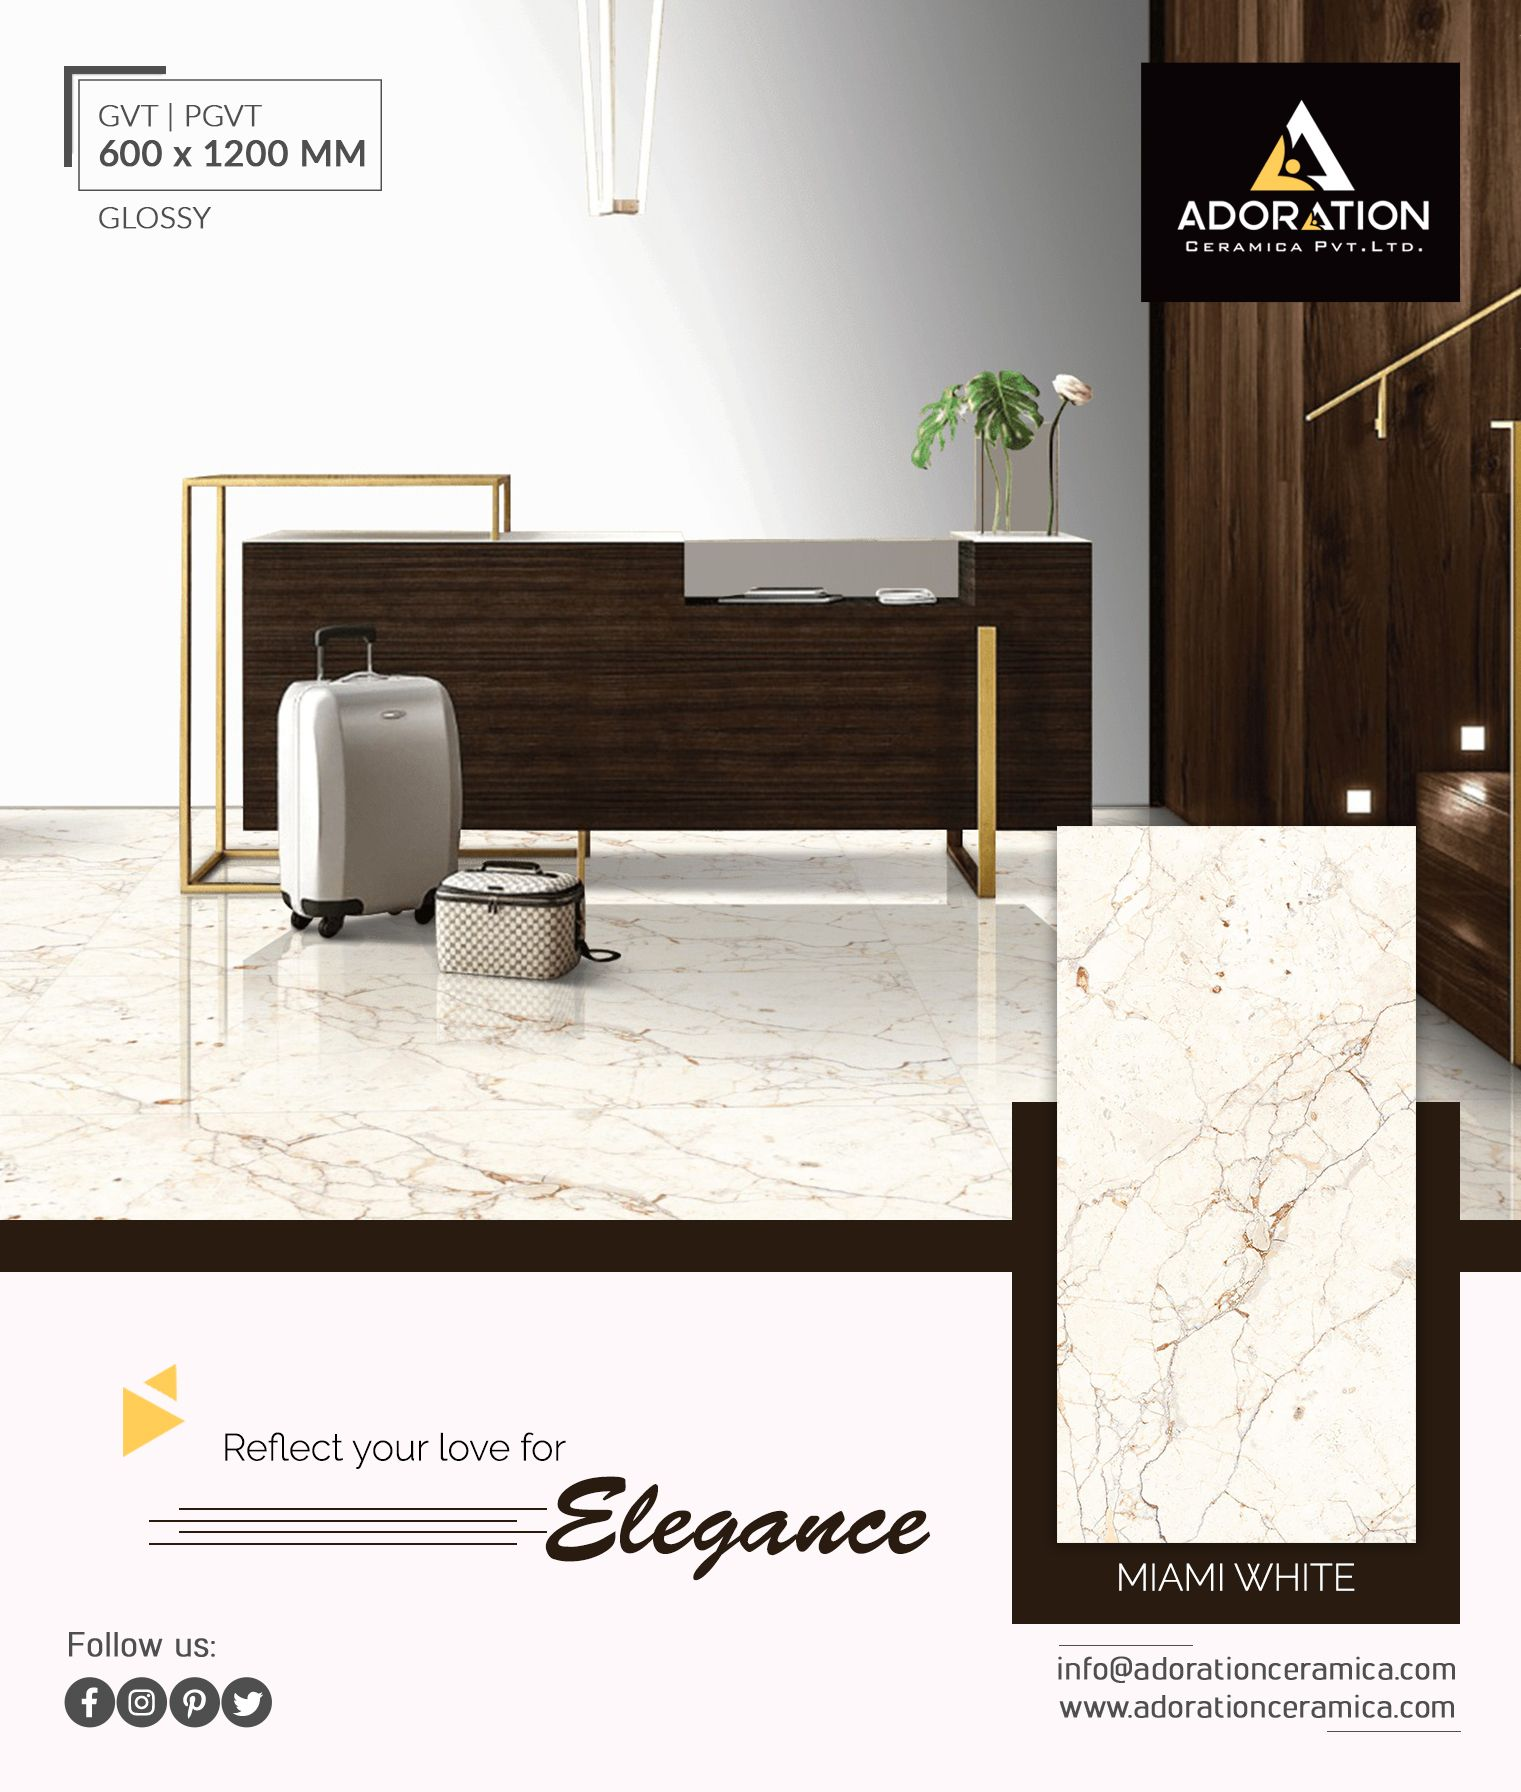 Reflect Your Love For Elegance 600x1200mm Miami White Glossyseries Architecturalflooring Adorationcollection Tile Manufacturers Floor Decor Home Decor